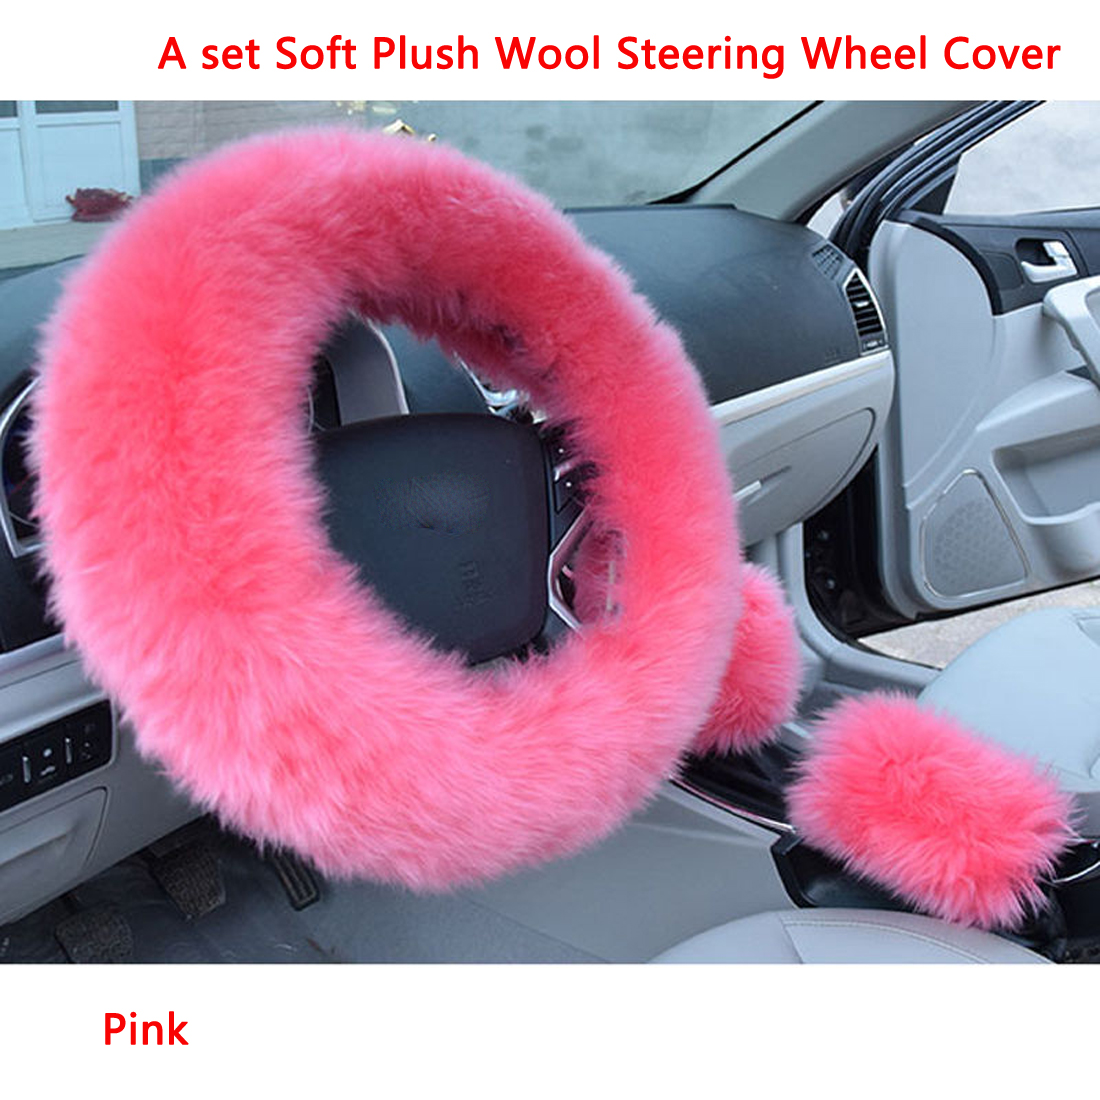 Dongzhen Auto Car Steering Wheel Cover Universal Soft Warm Wool Plush Winter Fur Handle Sleeves Supplies Car Accessories 1 Set